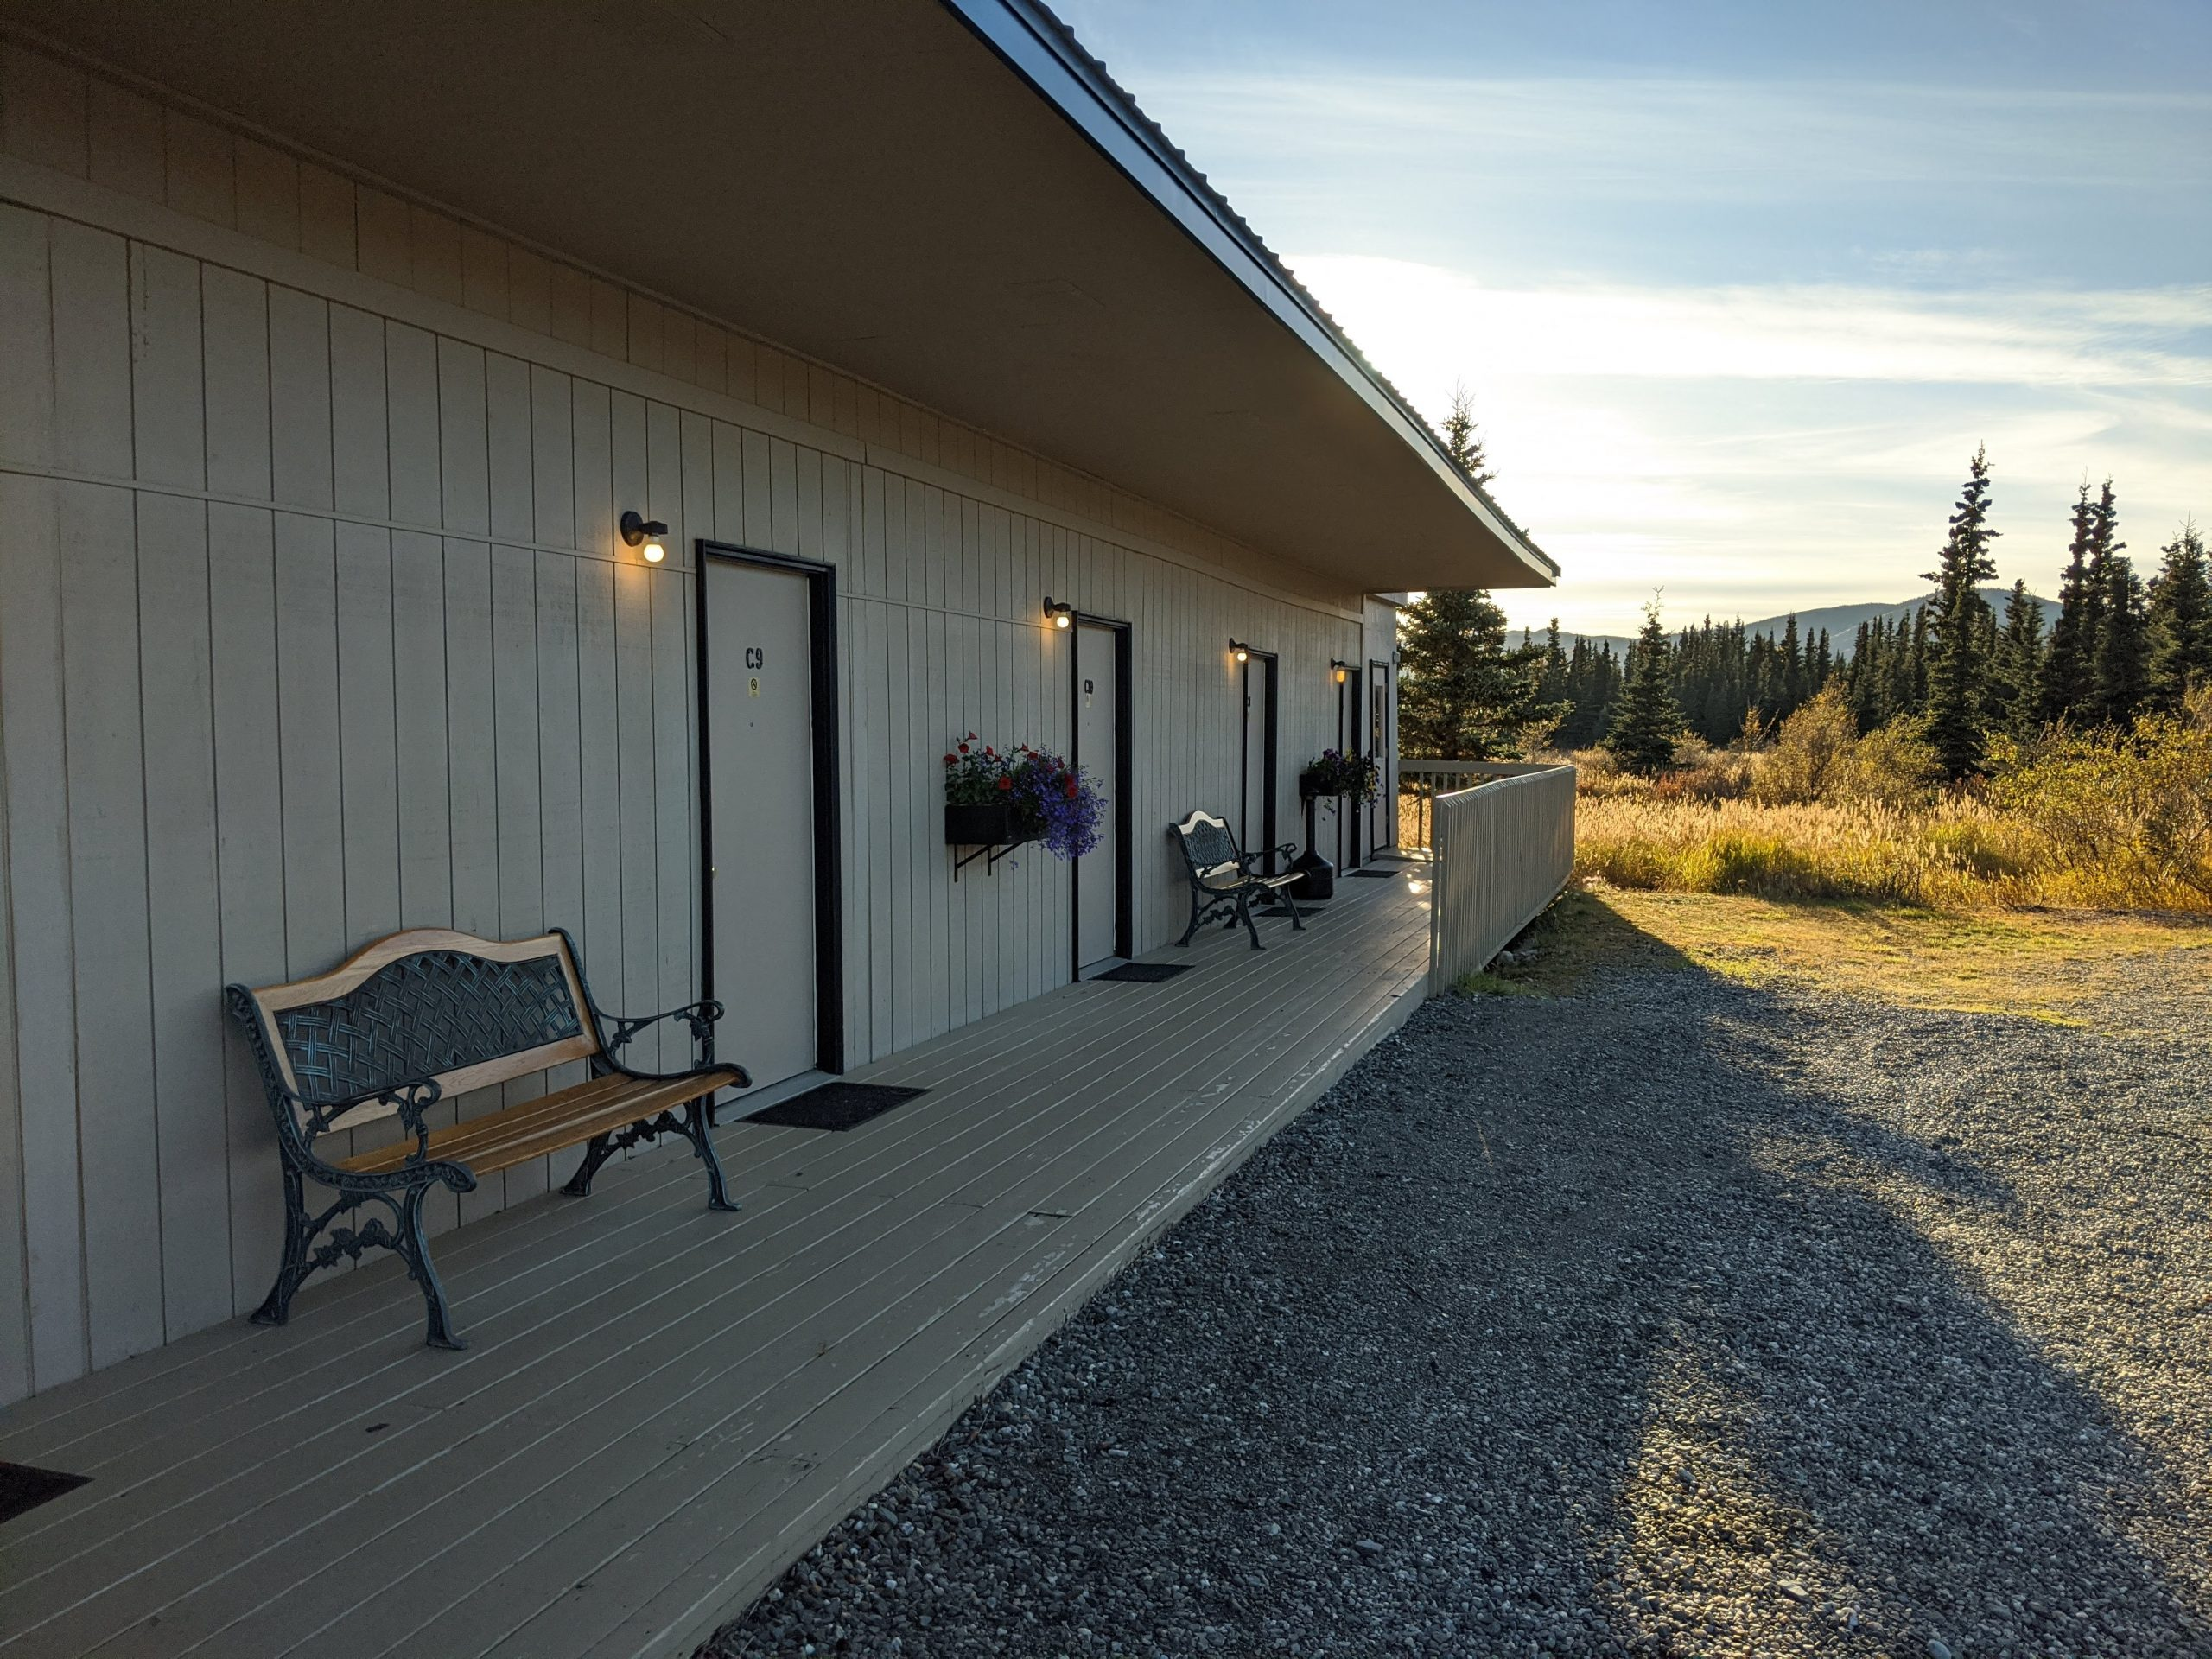 Denali Park Hotel is a great option for families.  The hotel near Denali National Park is also pet friendly.